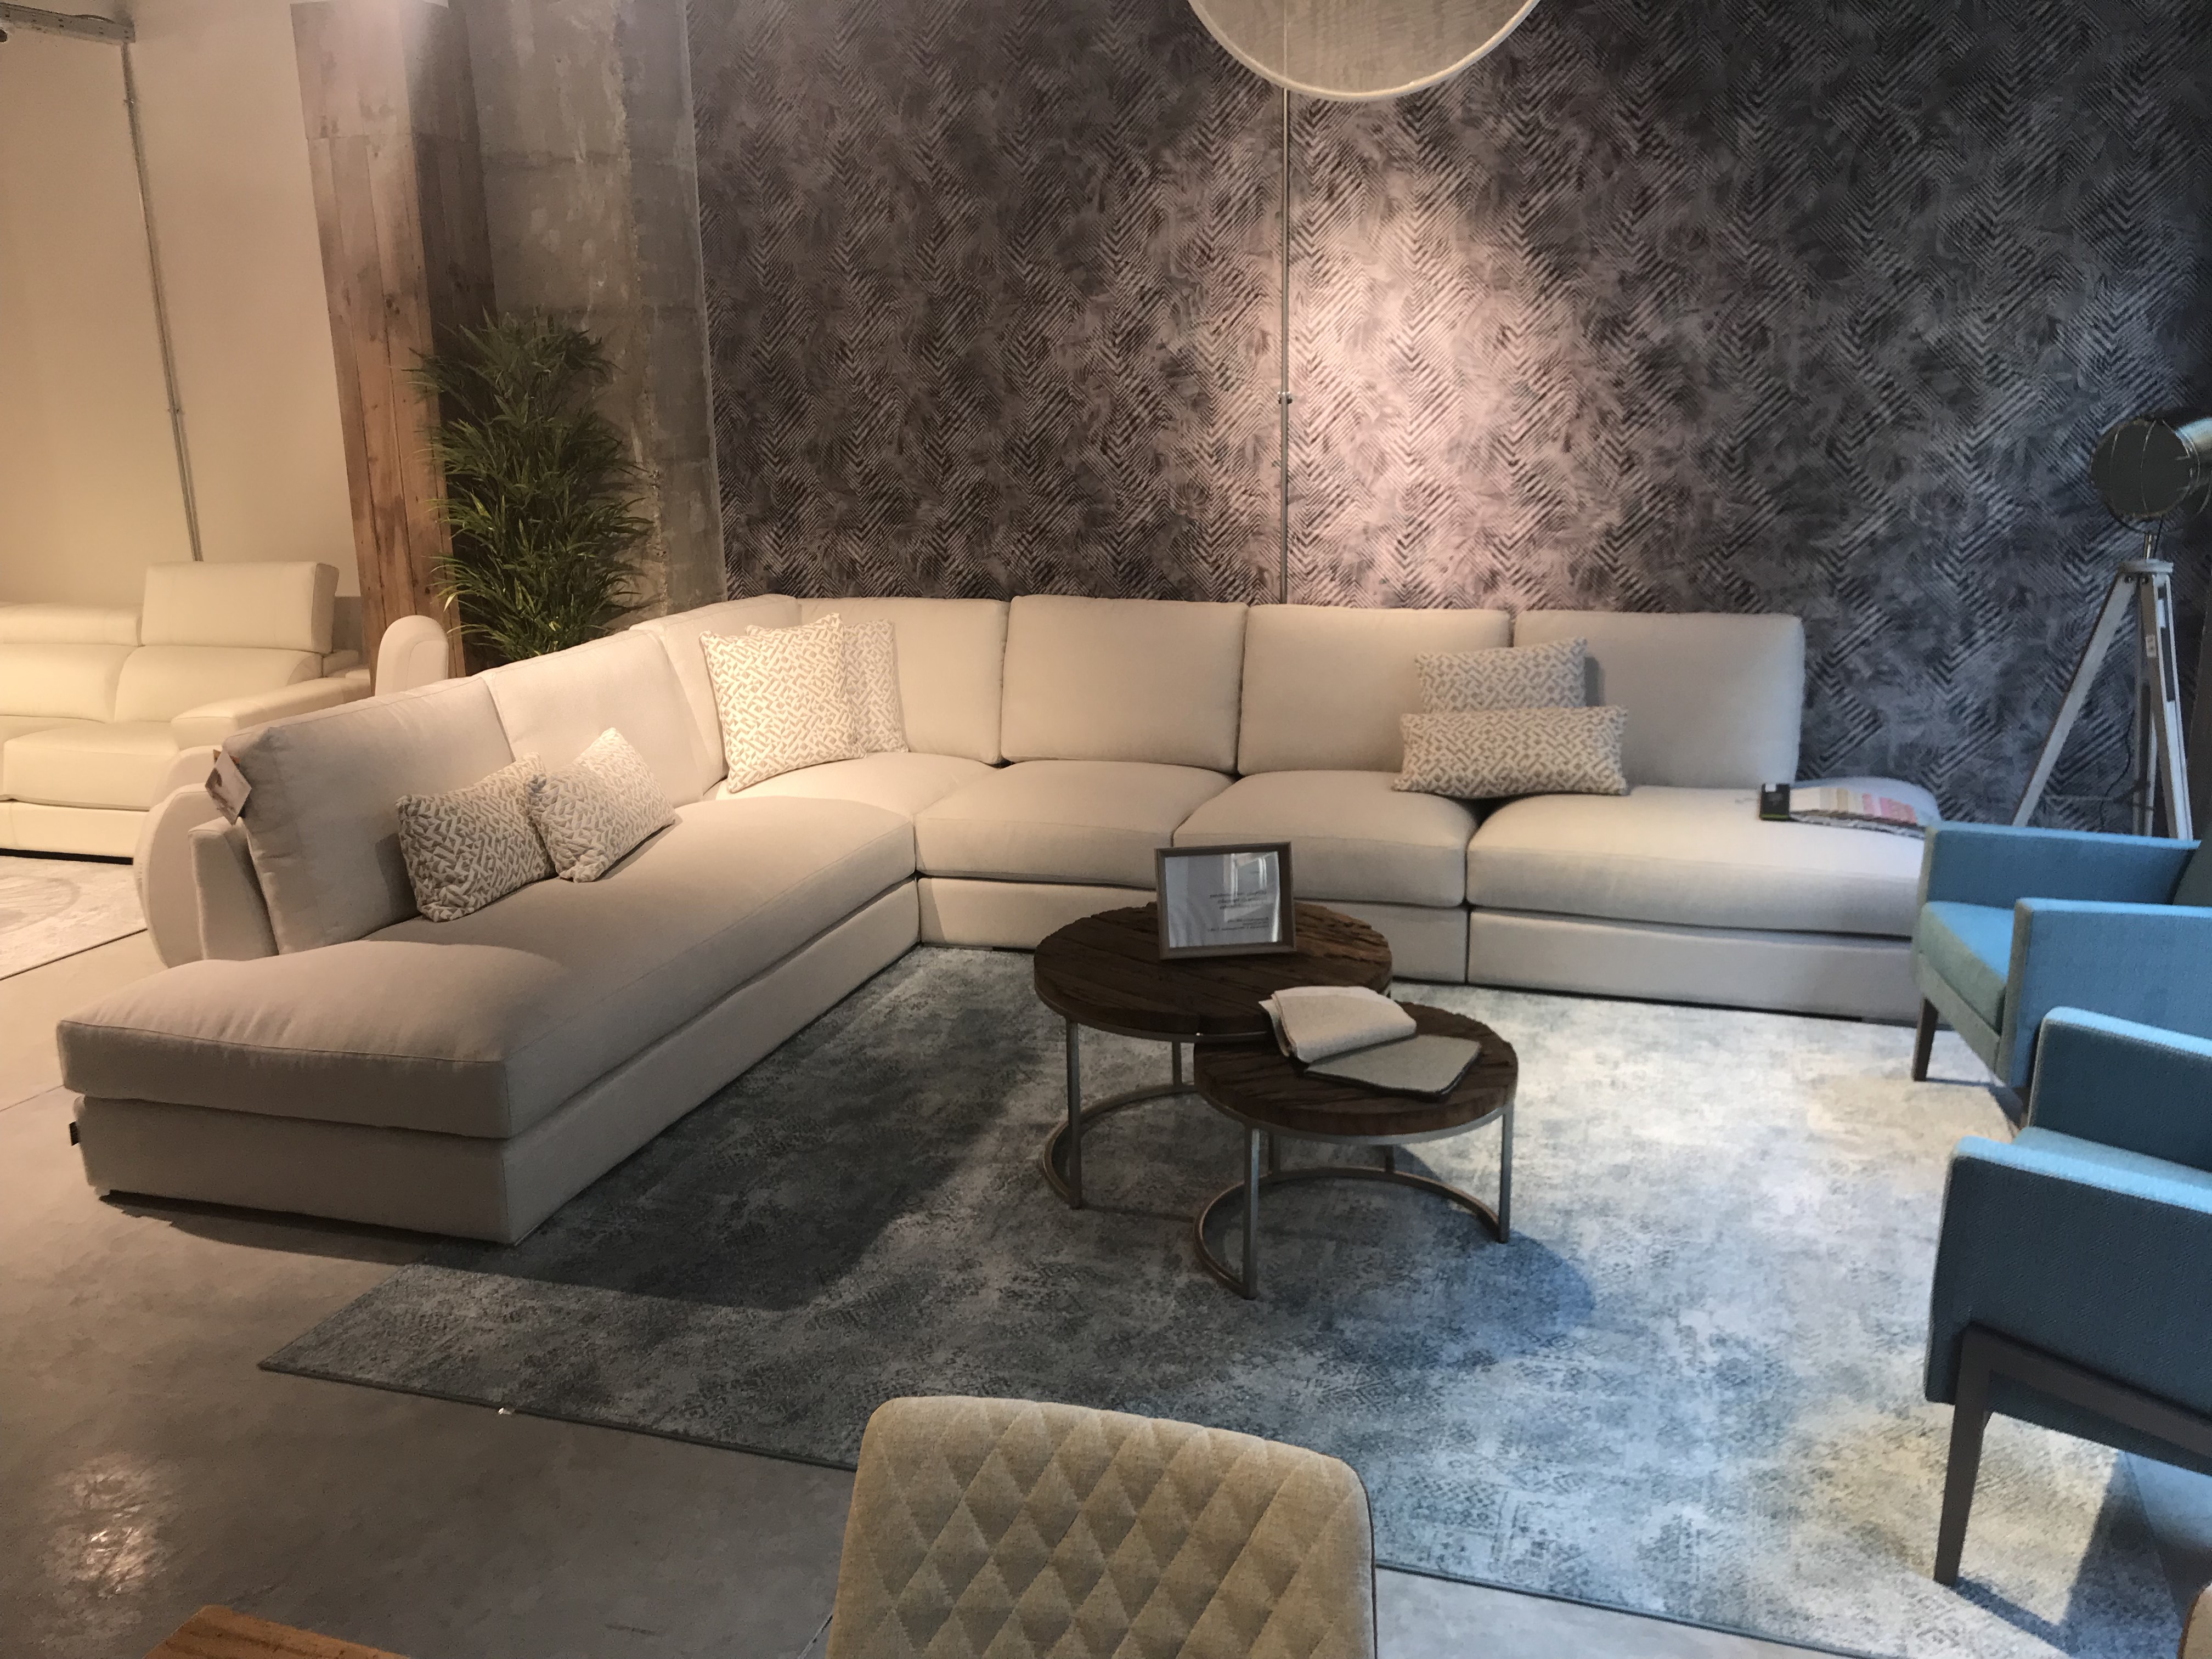 Sofas Outlet Madrid S5d8 Outlet the sofa Pany